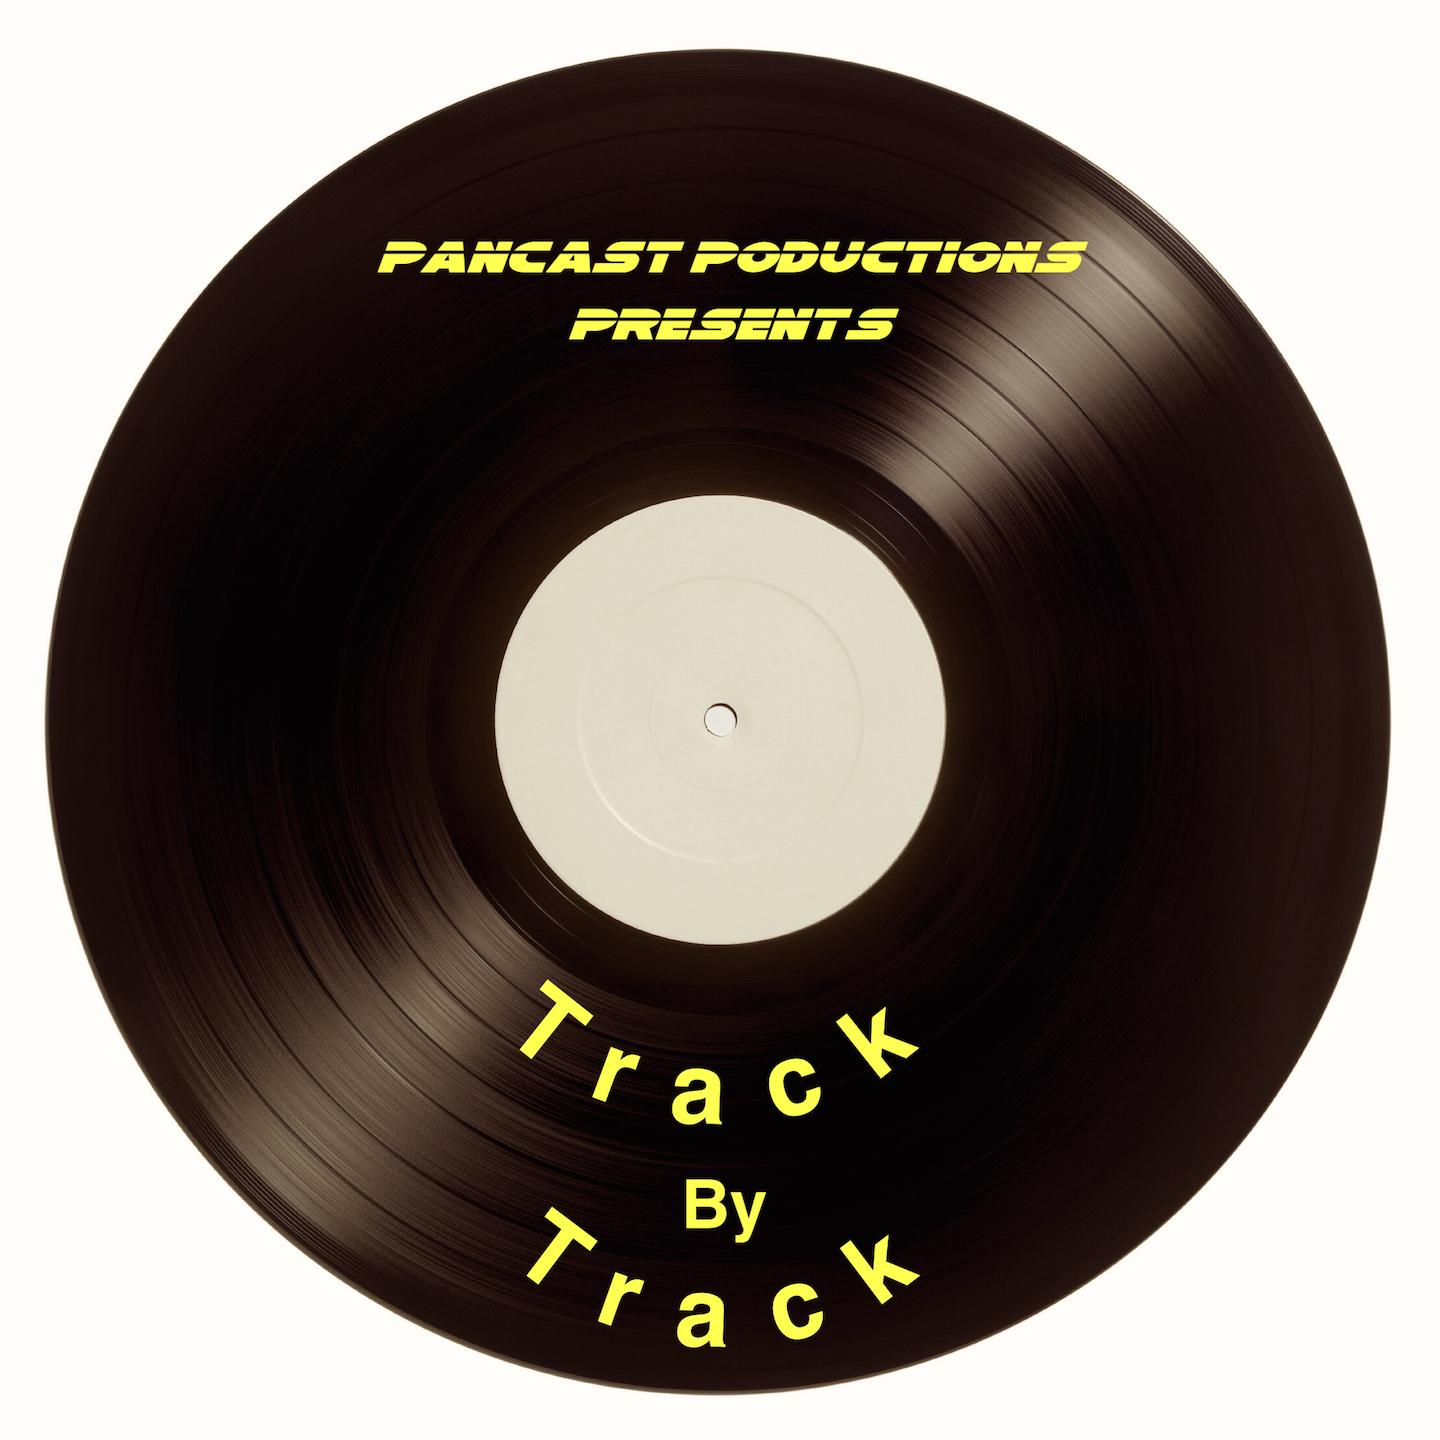 Pancast PODuctions presents Track by Track